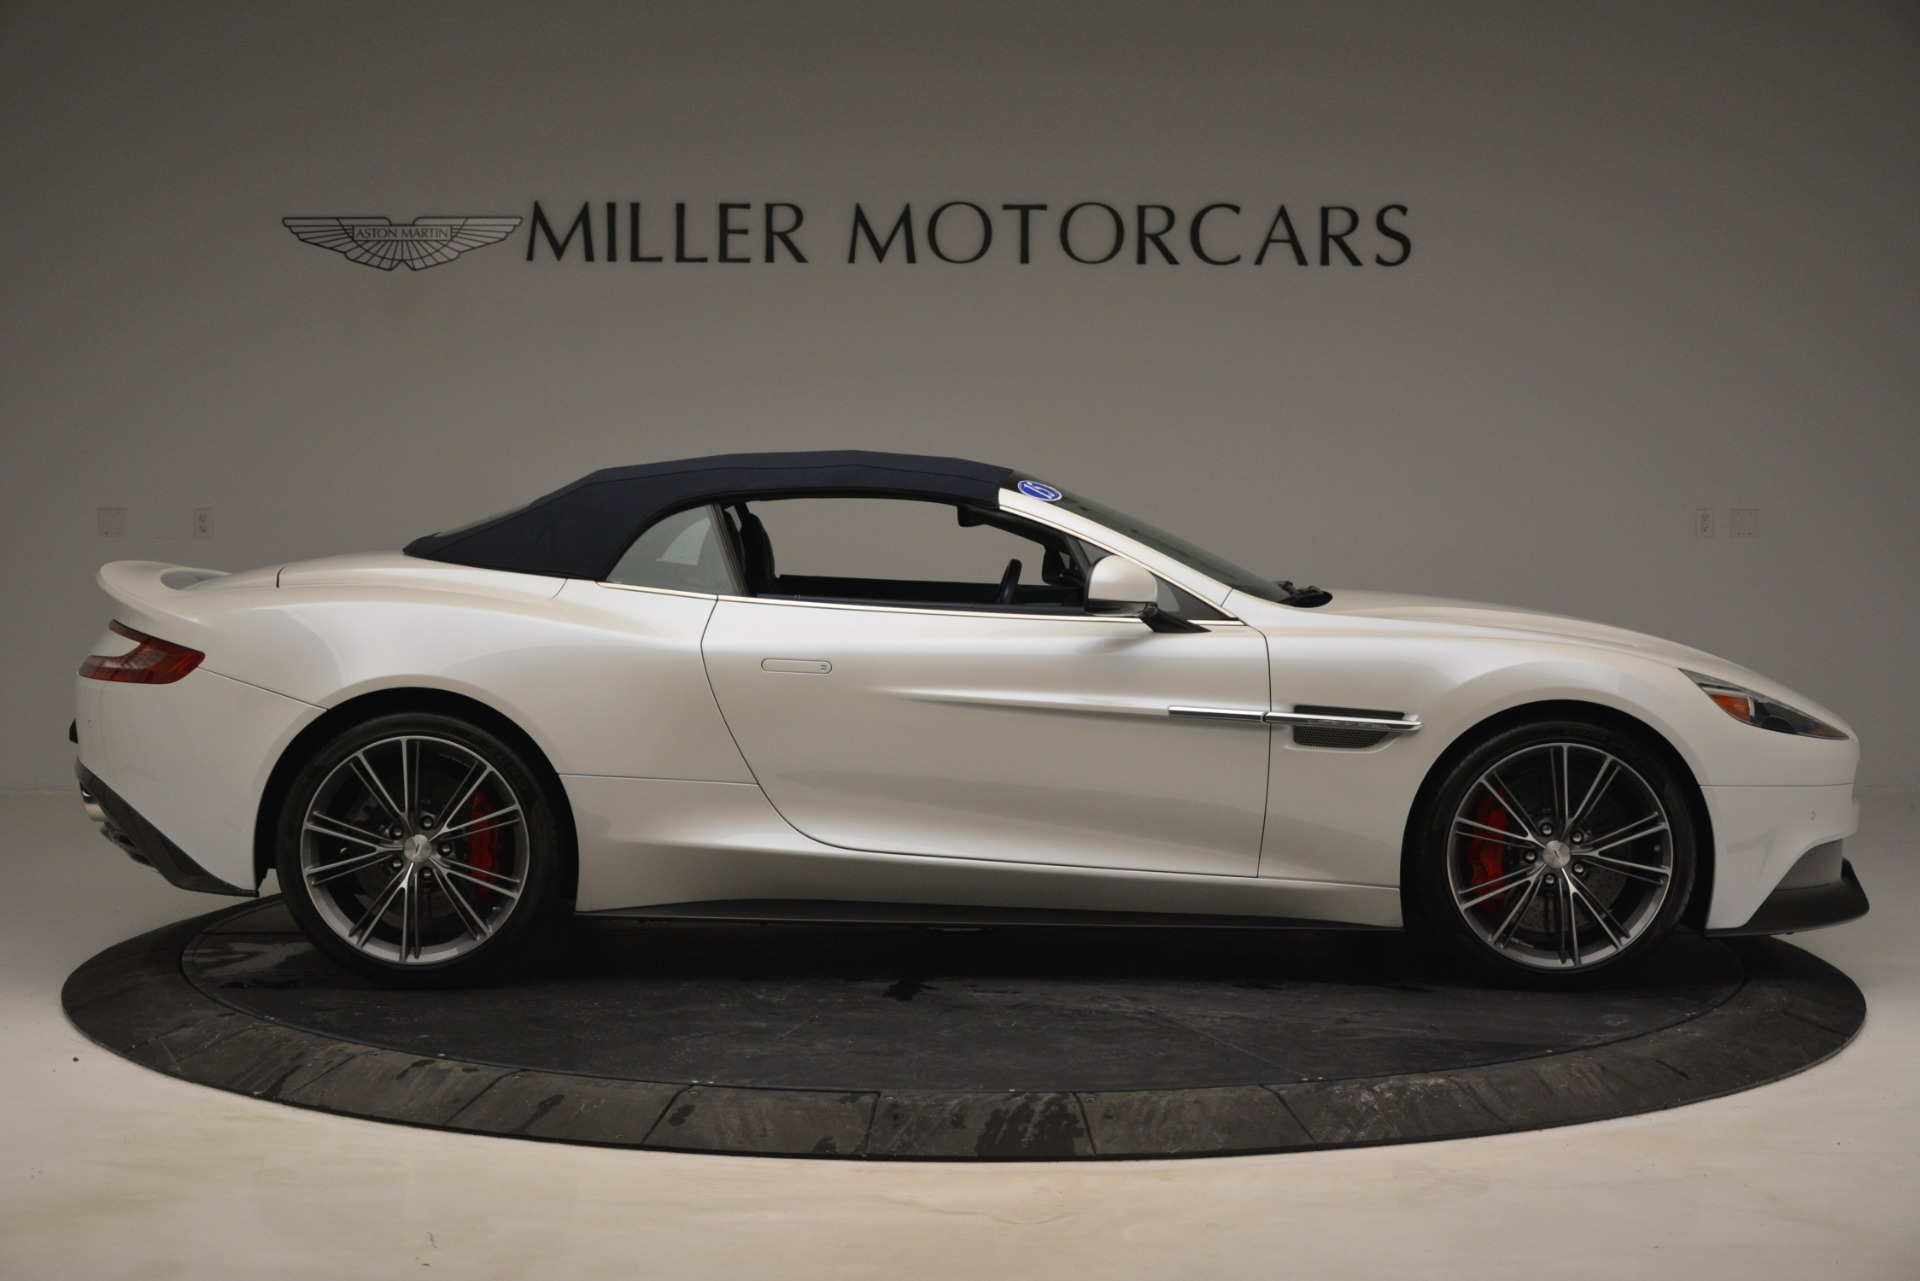 Used 2015 Aston Martin Vanquish Convertible For Sale In Greenwich, CT 2982_p17